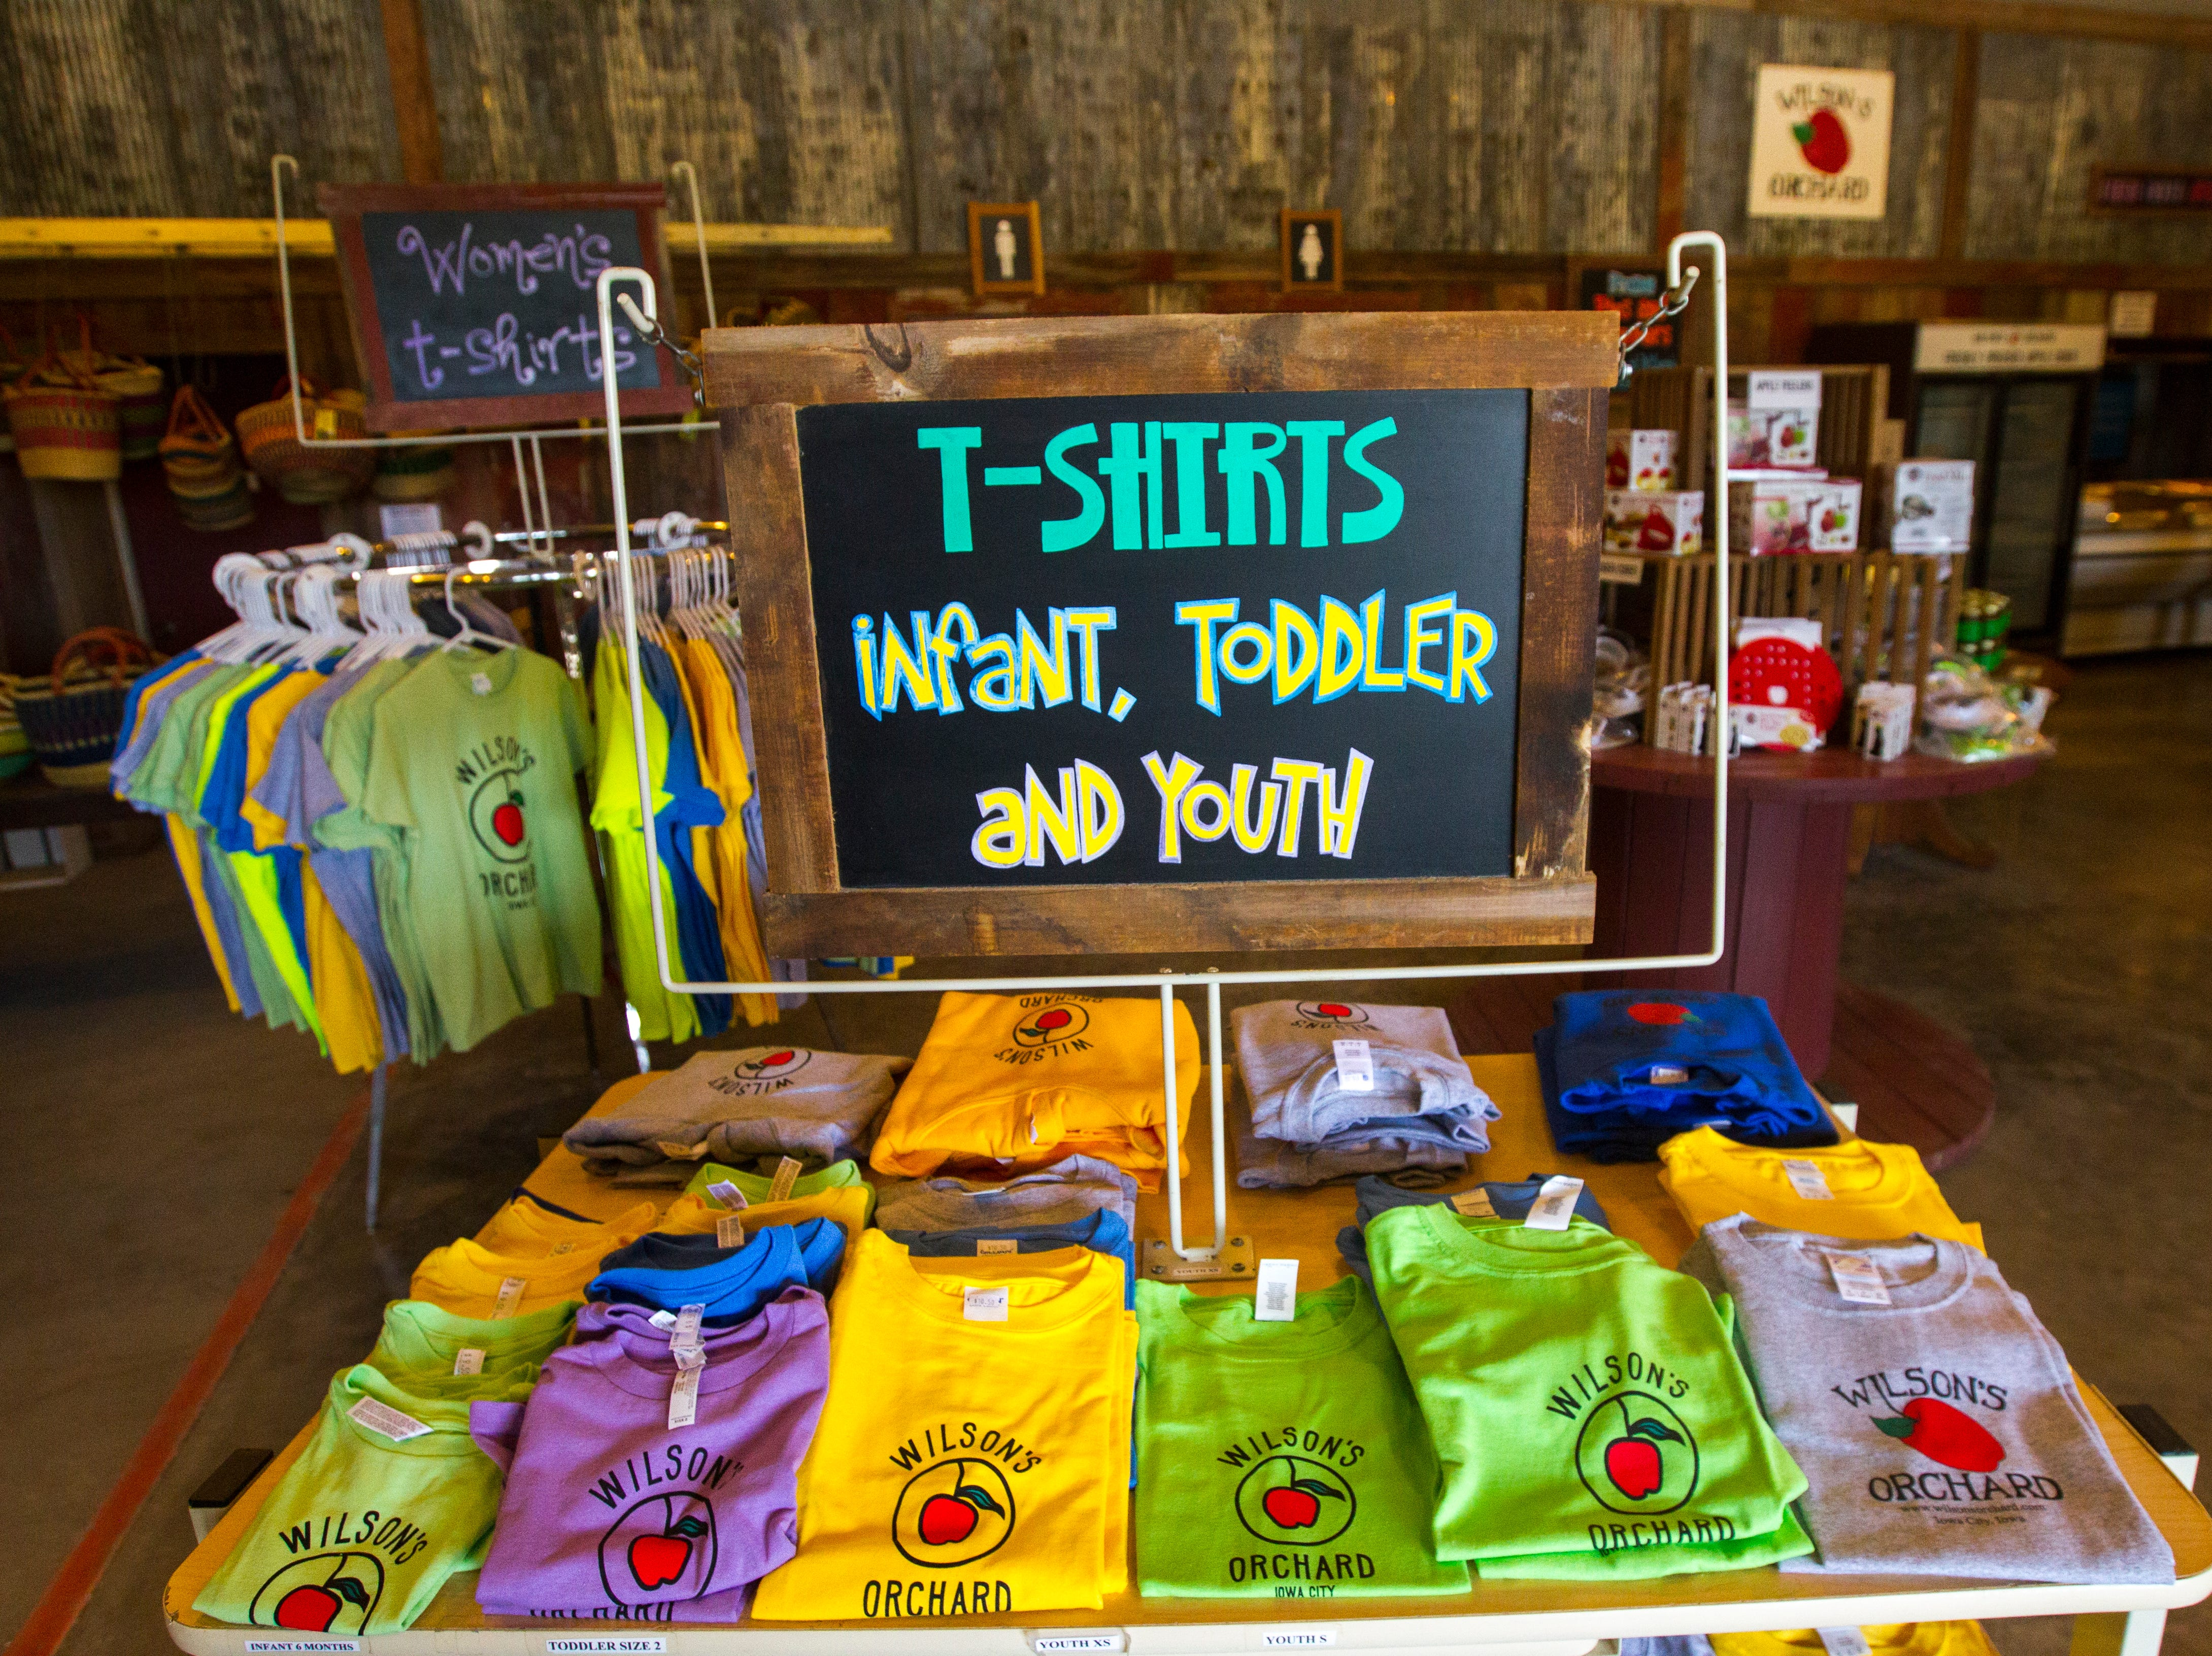 Merchandise is displayed on Wednesday, Aug. 1, 2018, at Wilson's Apple Orchard in Iowa City, Iowa. The orchard is open from Aug. 1 through Oct. 31, 10 a.m. to 6 p.m daily.